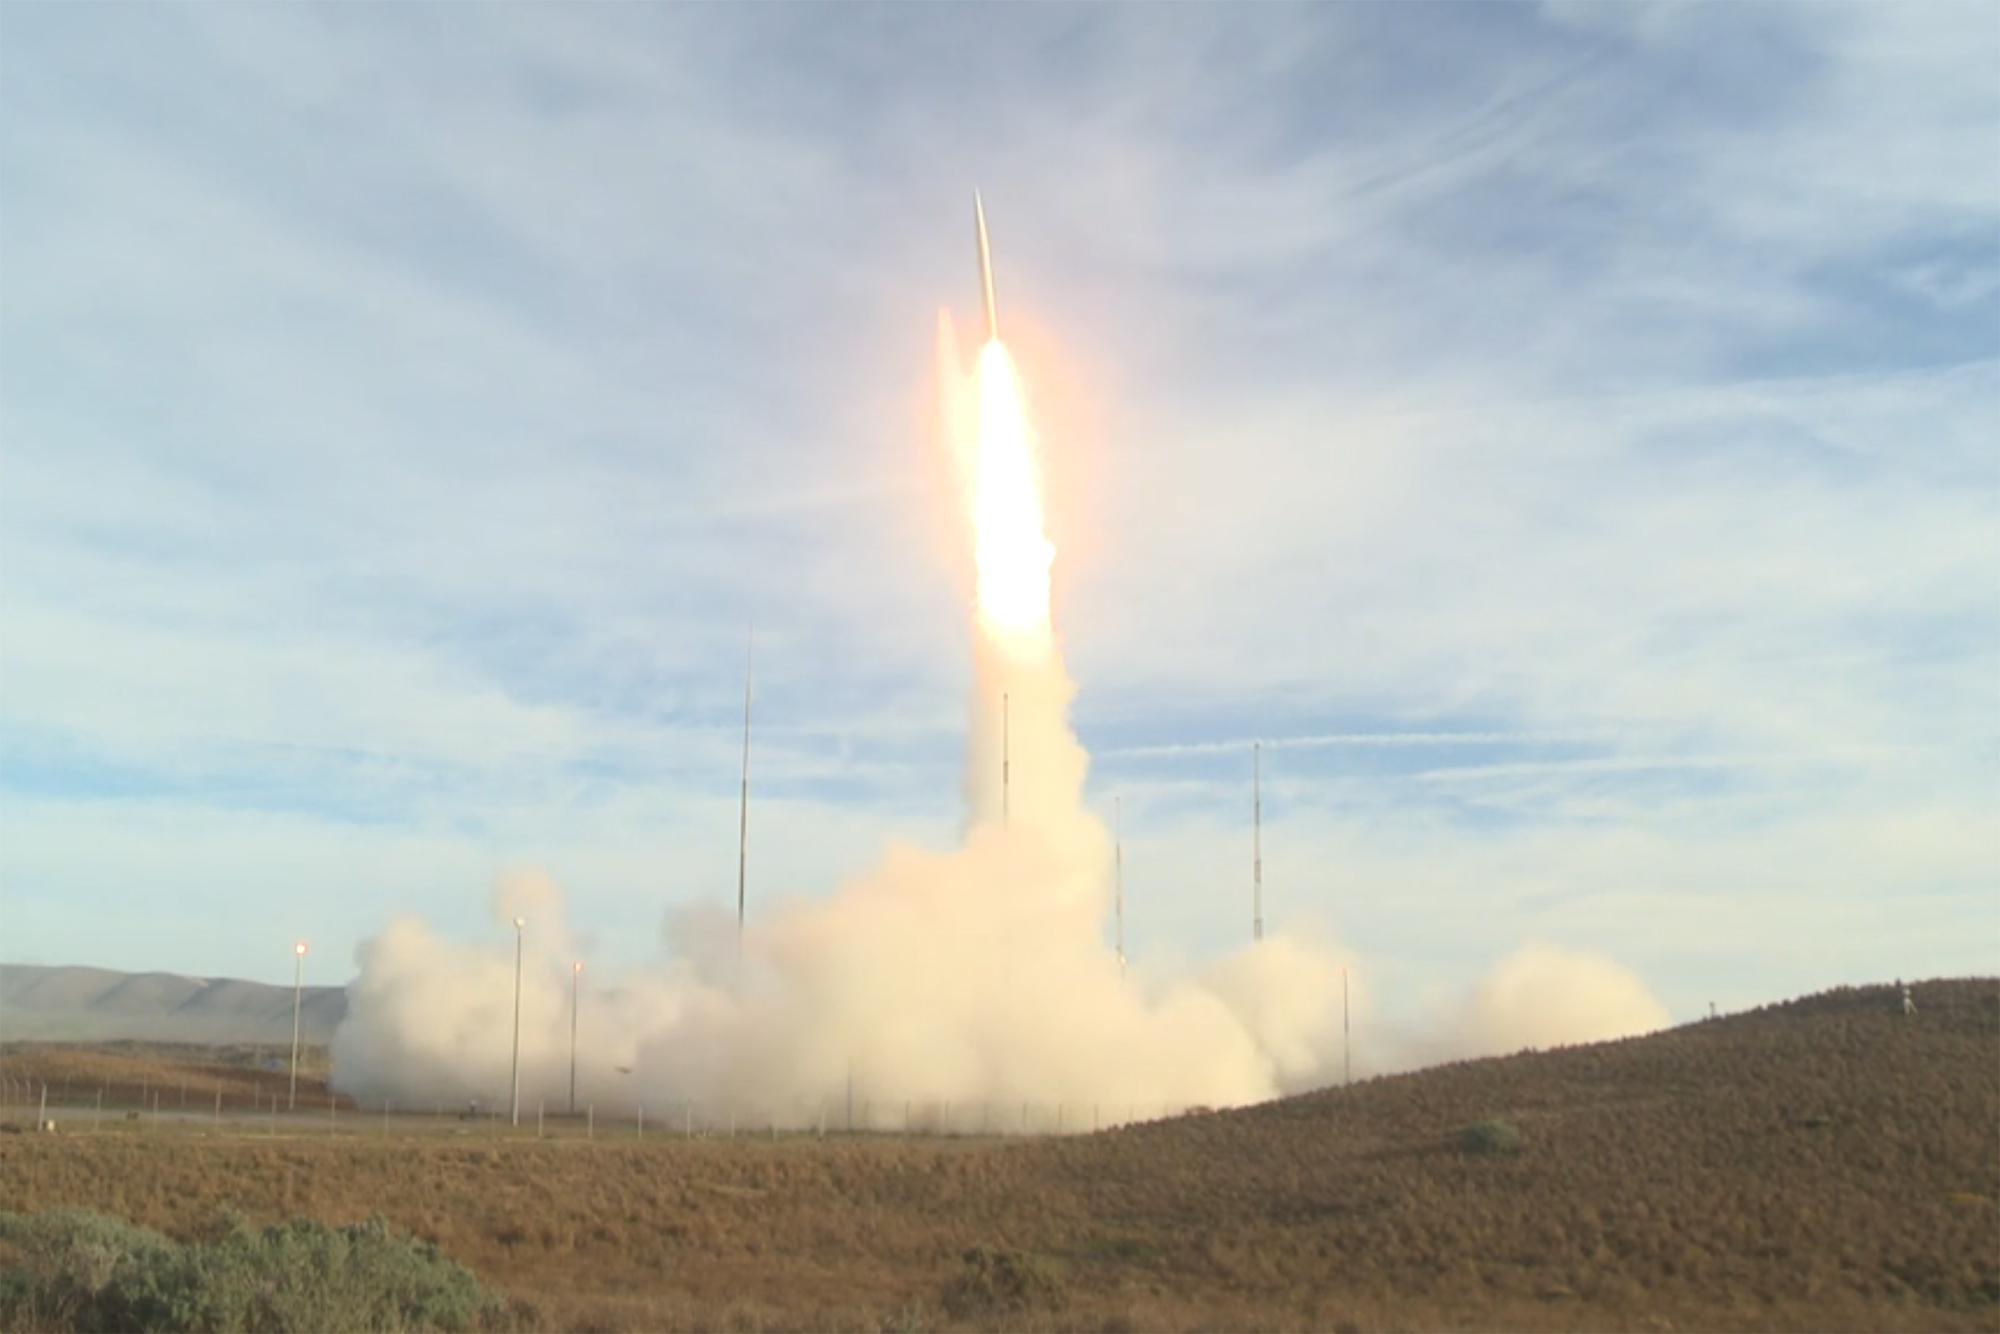 Air Force Tests New Intermediate-Range Ballistic Missile - Air Force Magazine